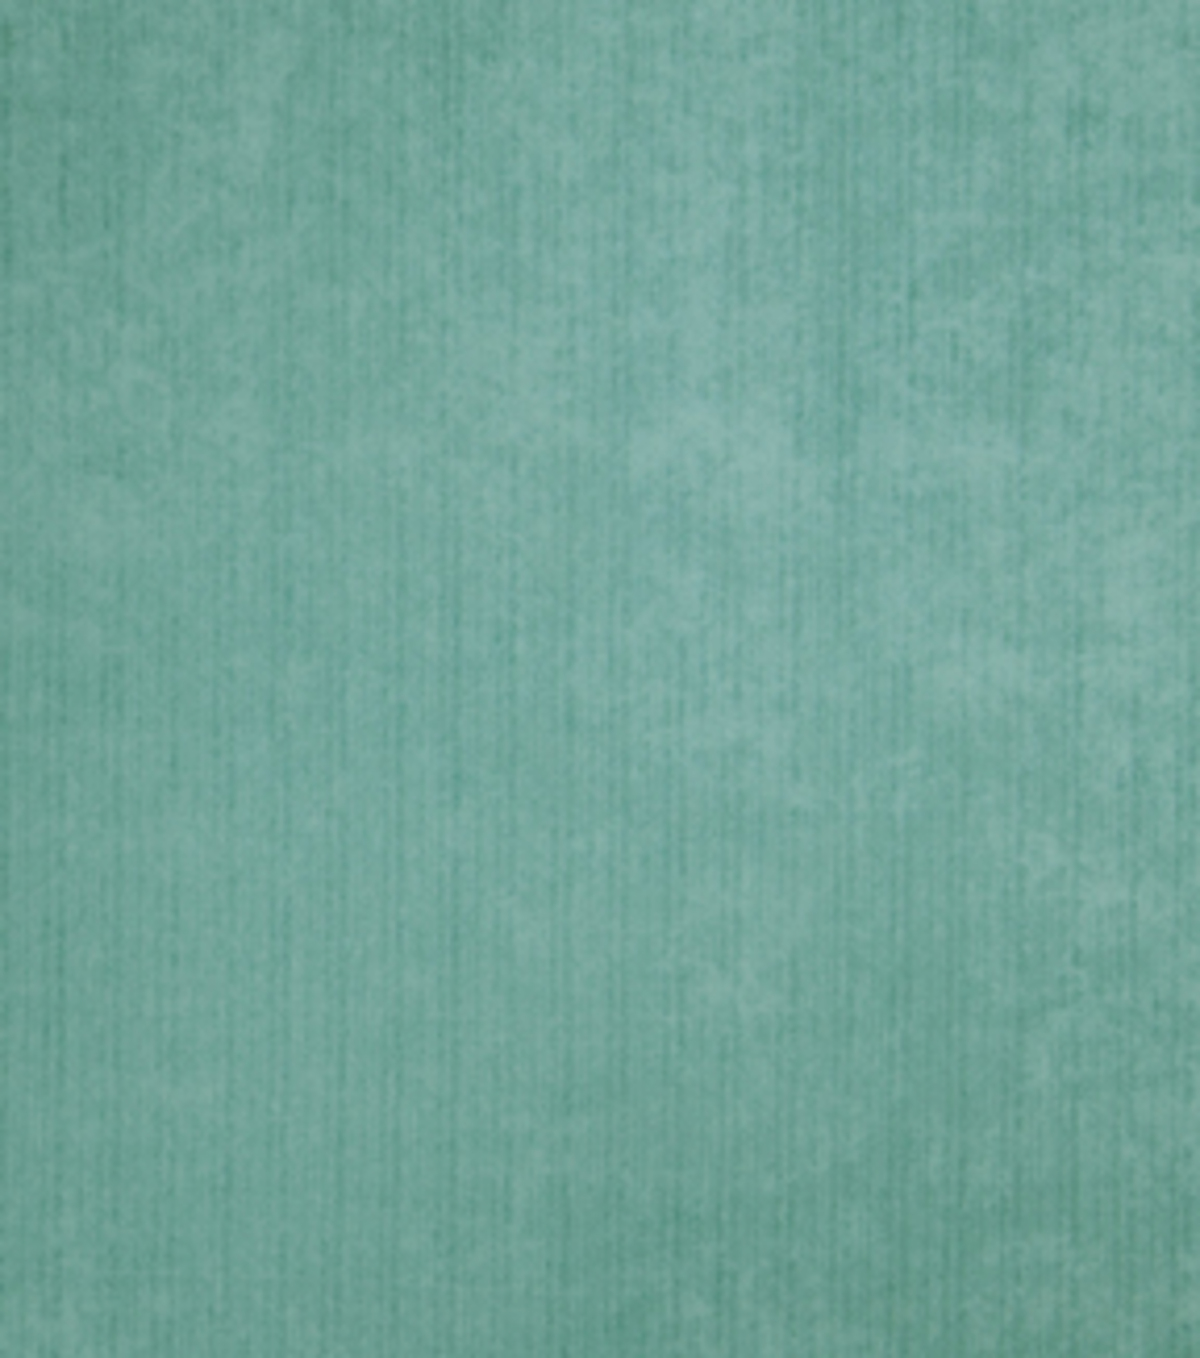 Home Decor 8\u0022x8\u0022 Fabric Swatch-Eaton Square Outdoor-Velvet   Mediterranean